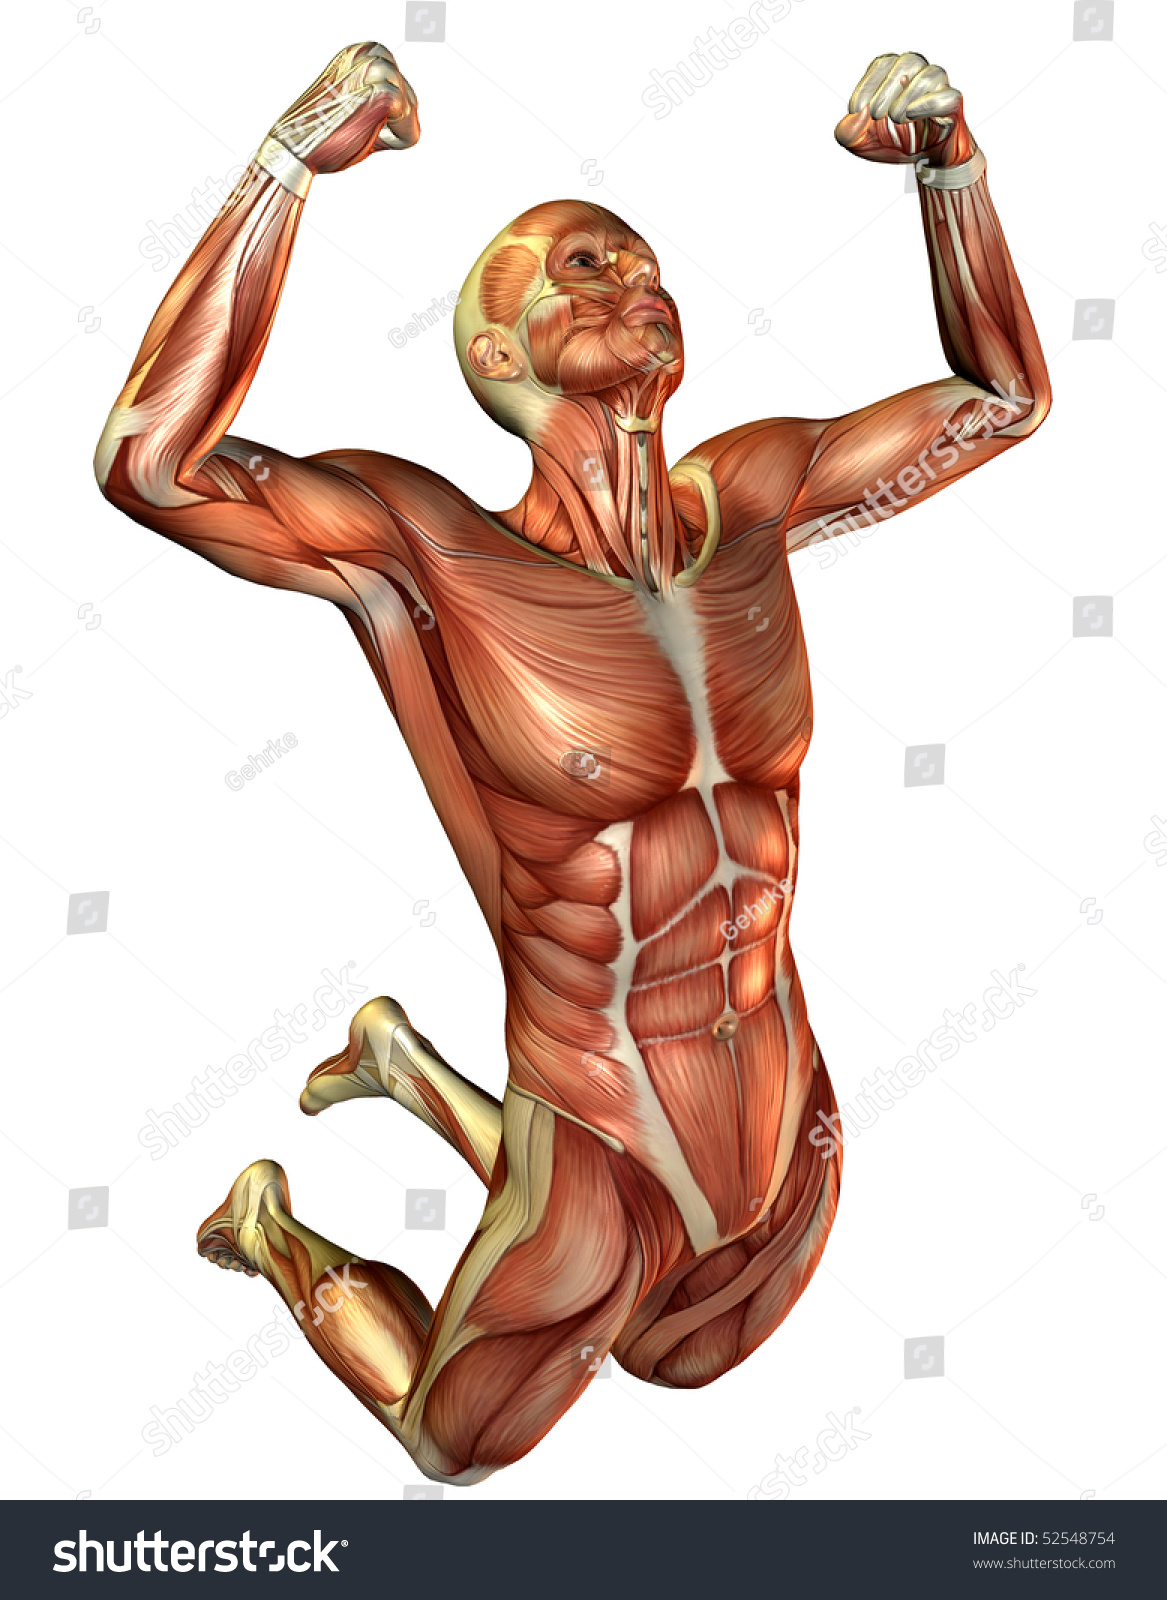 jumping man muscle study stock illustration 52548754 - shutterstock, Muscles